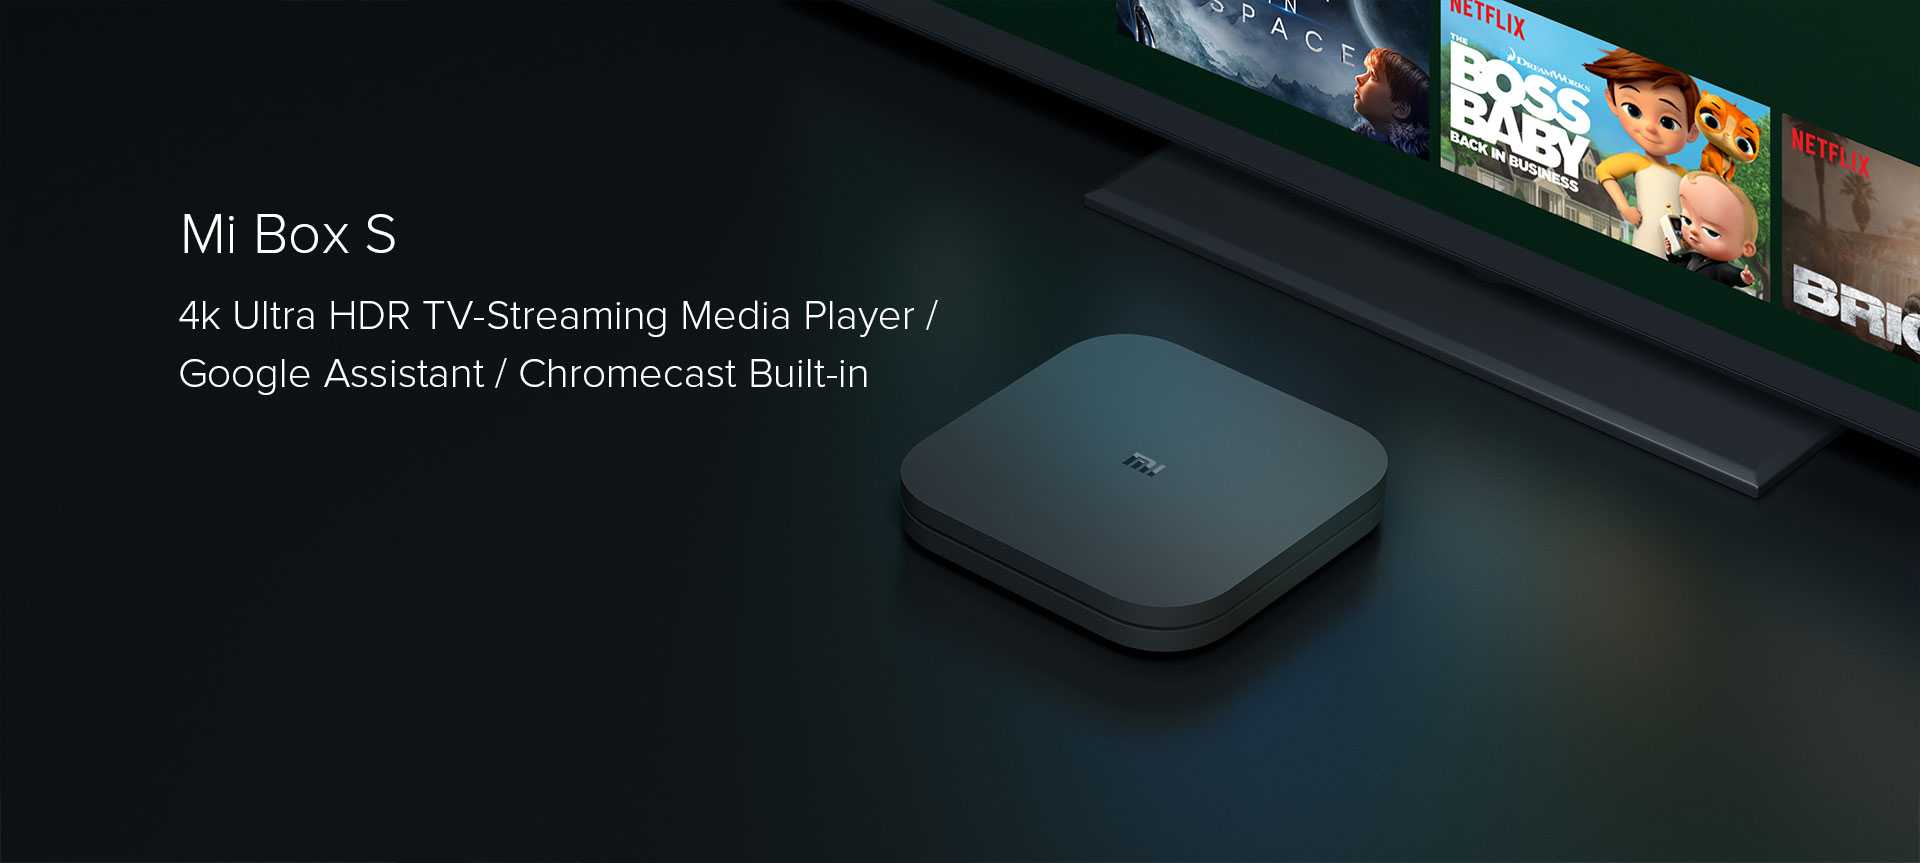 Mi Box s WIFI bluetooth TV Box Streaming Media Player Whosale